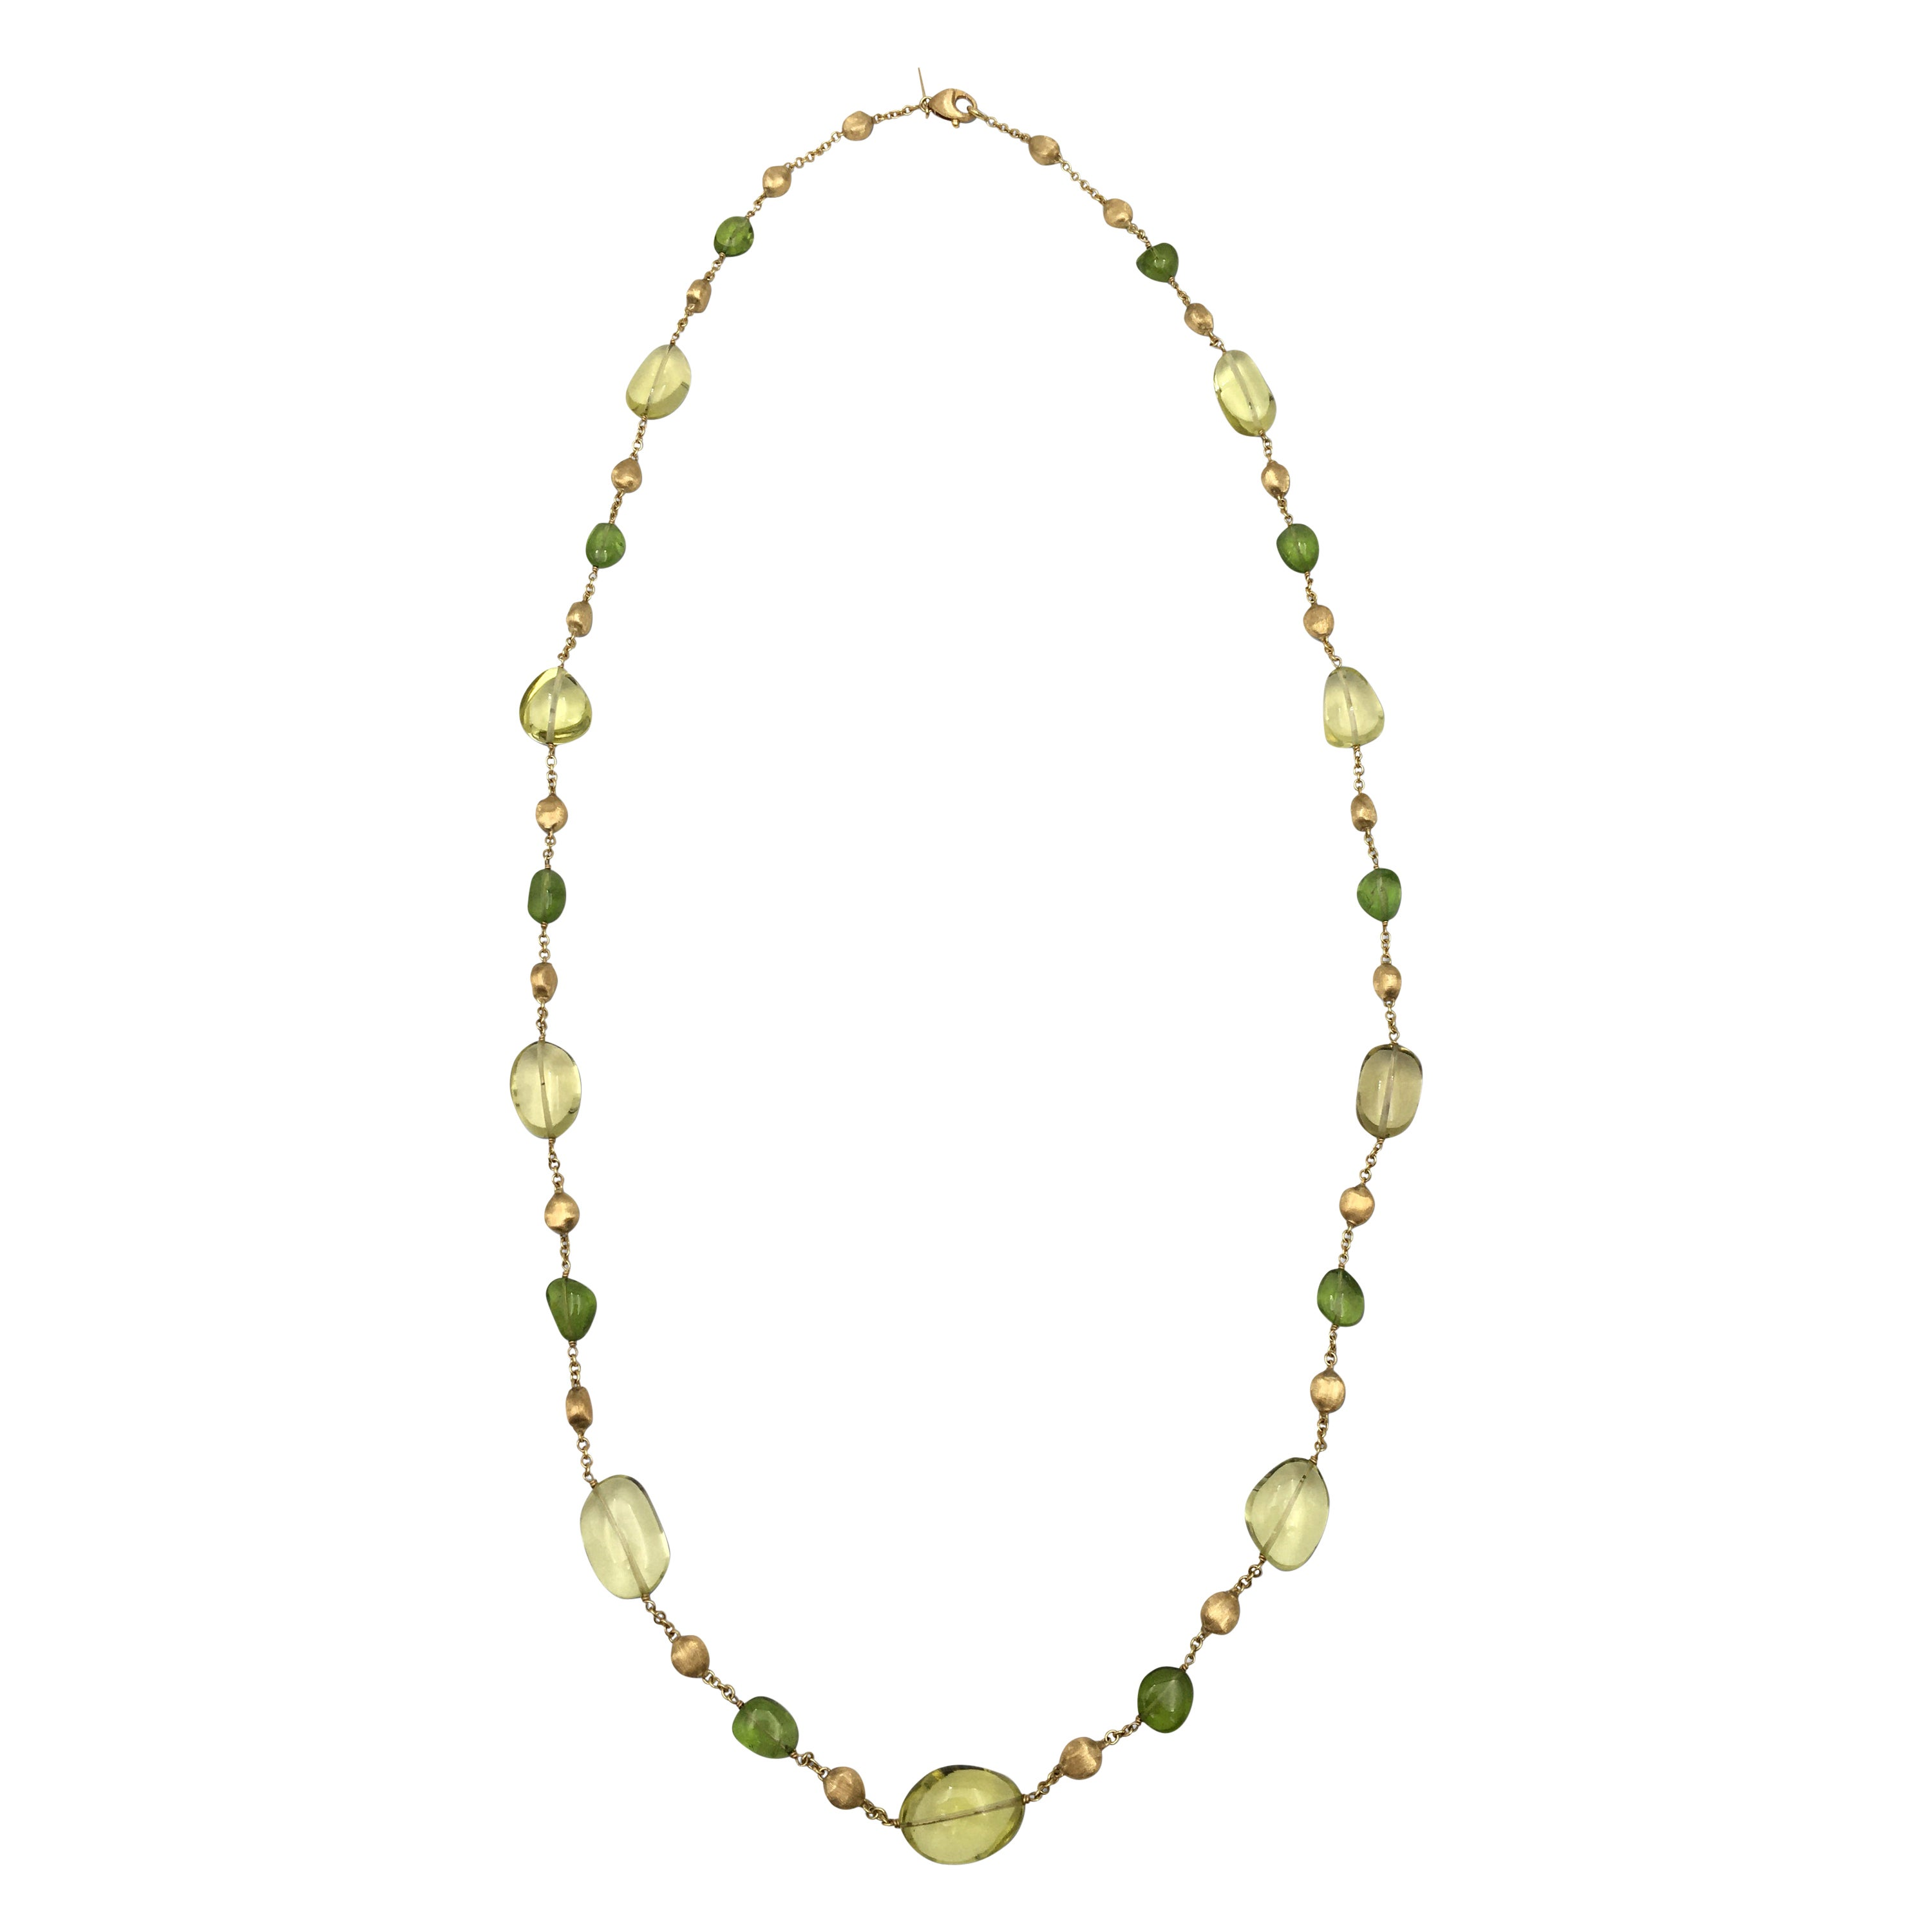 Marco Bicego 18 Karat Gold Citrine and Peridot Necklace